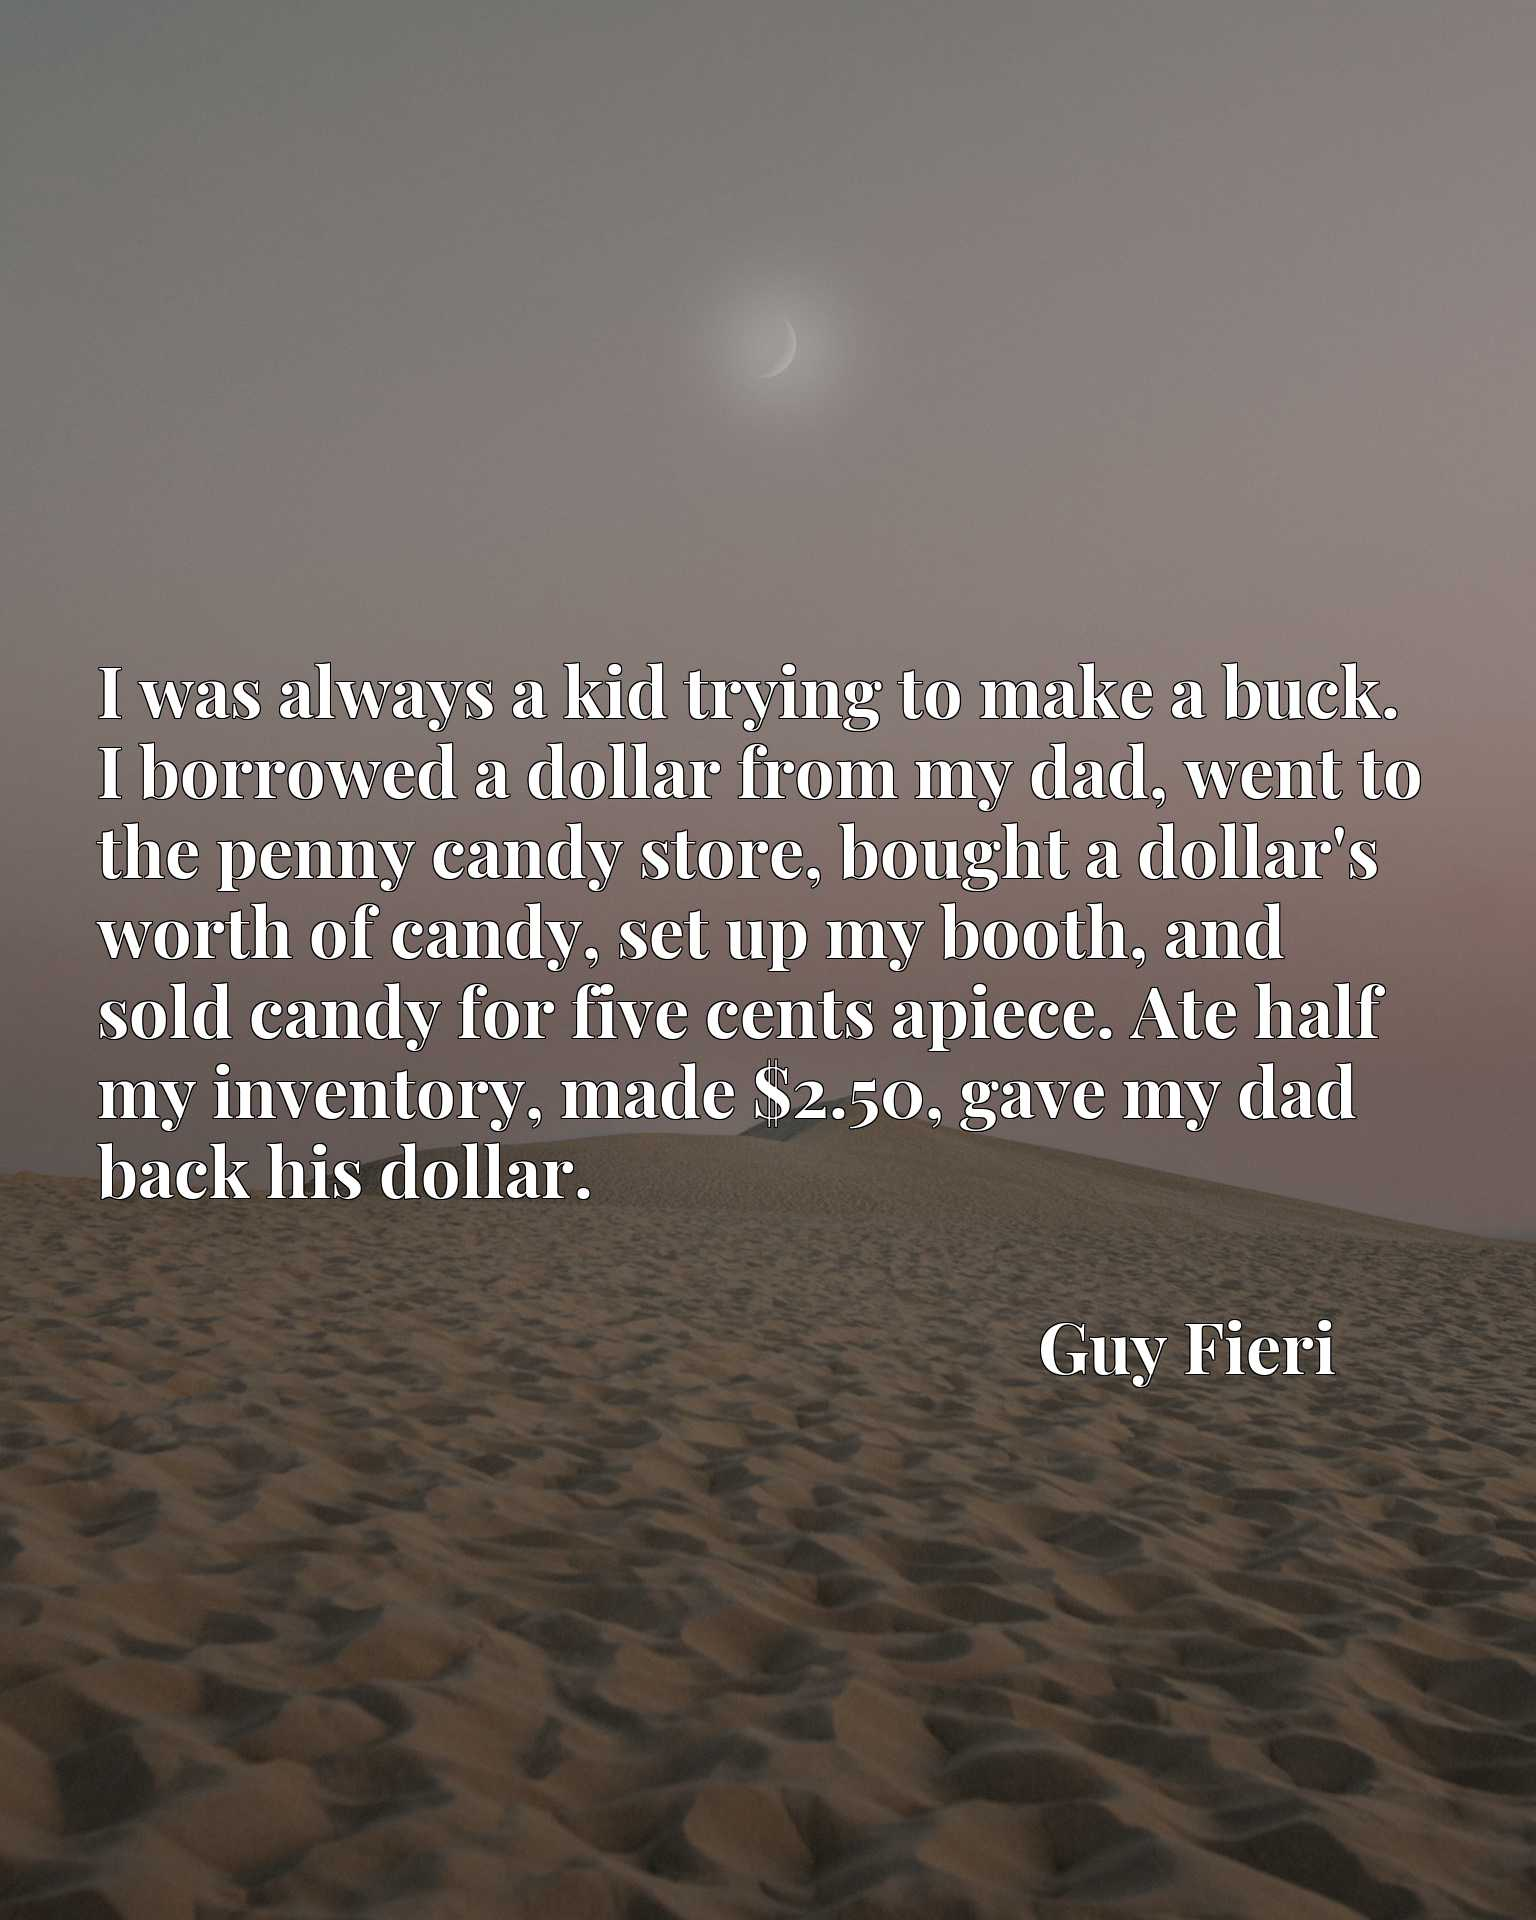 I was always a kid trying to make a buck. I borrowed a dollar from my dad, went to the penny candy store, bought a dollar's worth of candy, set up my booth, and sold candy for five cents apiece. Ate half my inventory, made $2.50, gave my dad back his dollar.